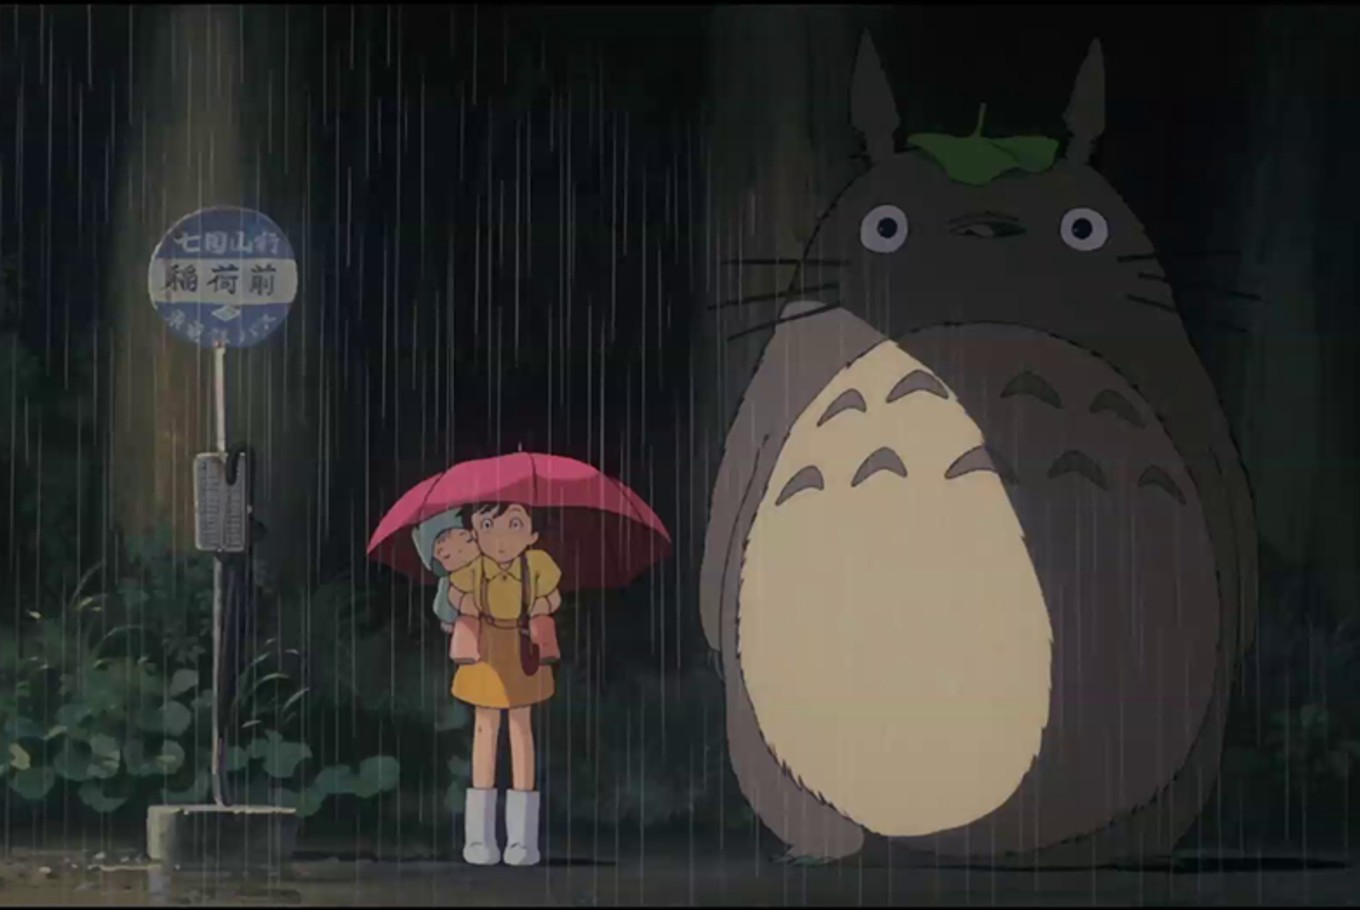 'The World of Ghibli' exhibition to be held in Jakarta in August